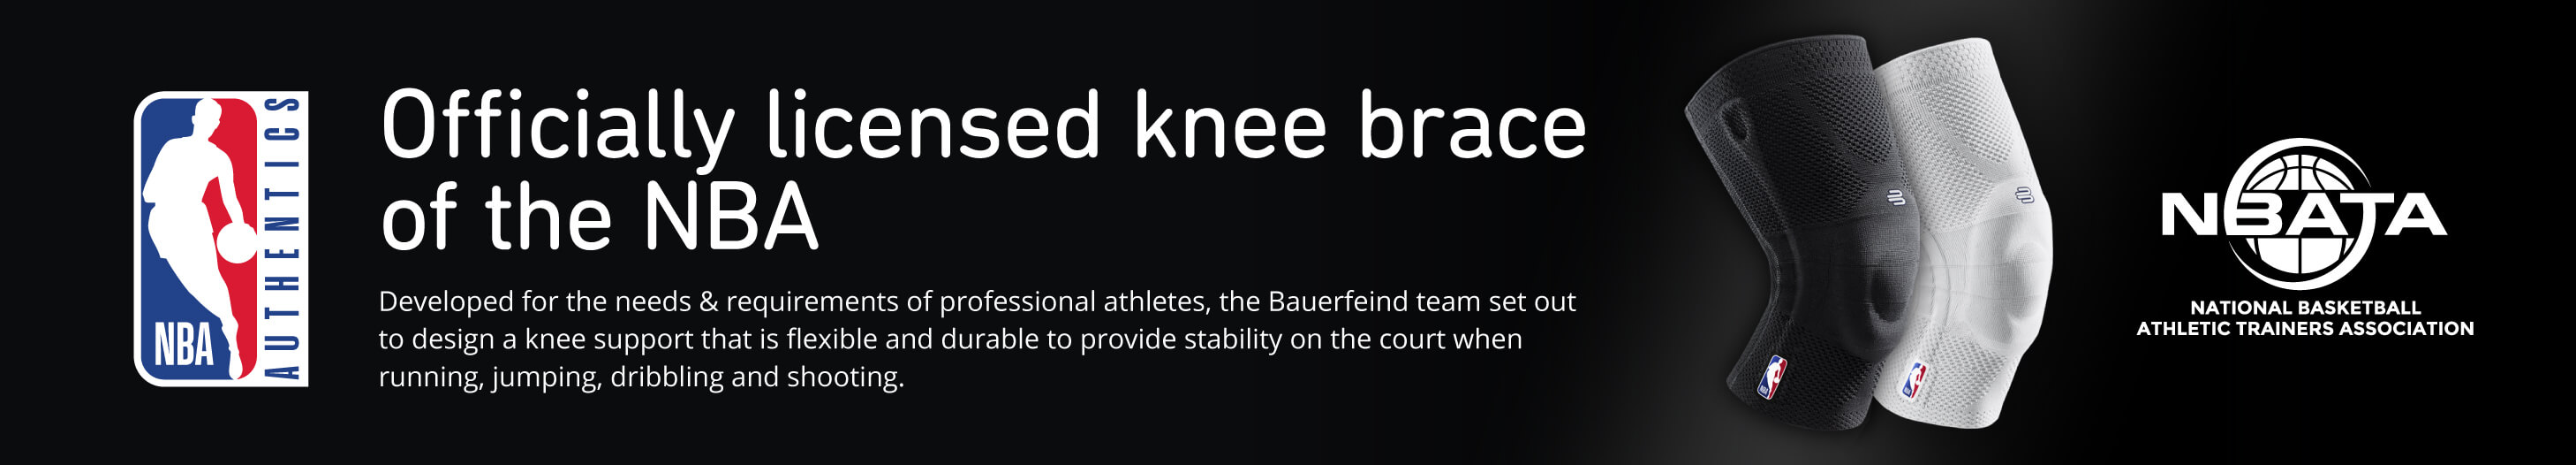 Bauerfeind GenuTrain NBA Knee Support